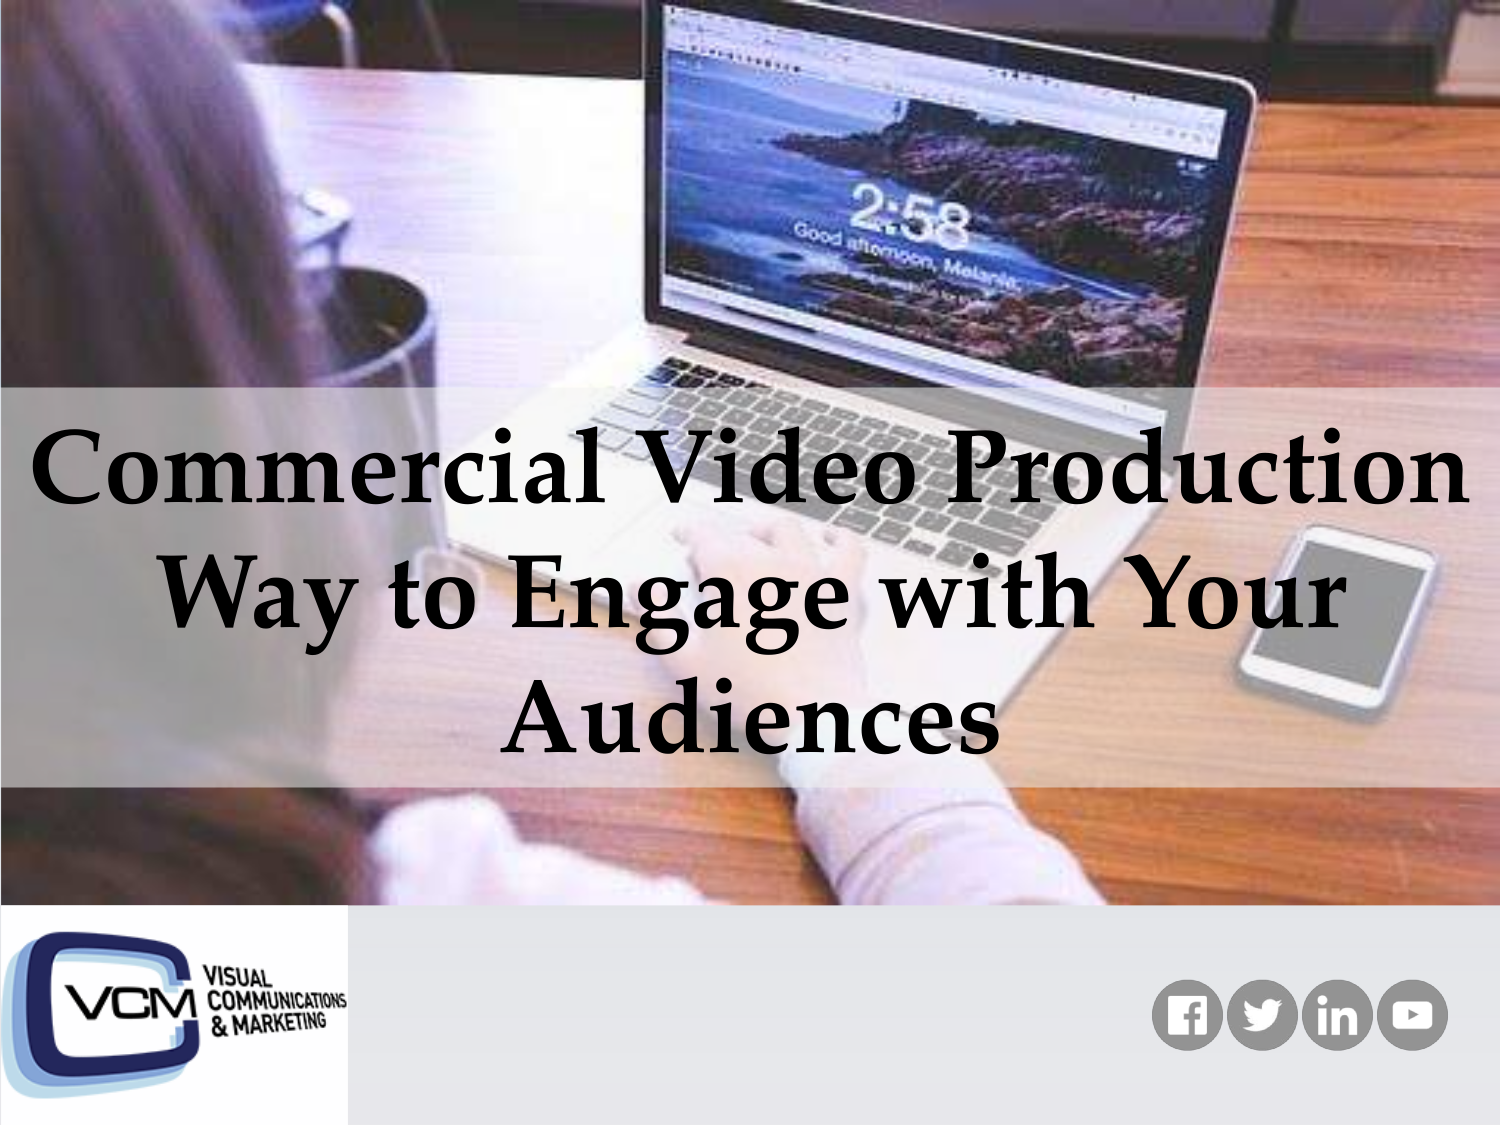 Commercial Video Production - Way to Engage with Your Audiences.pptx